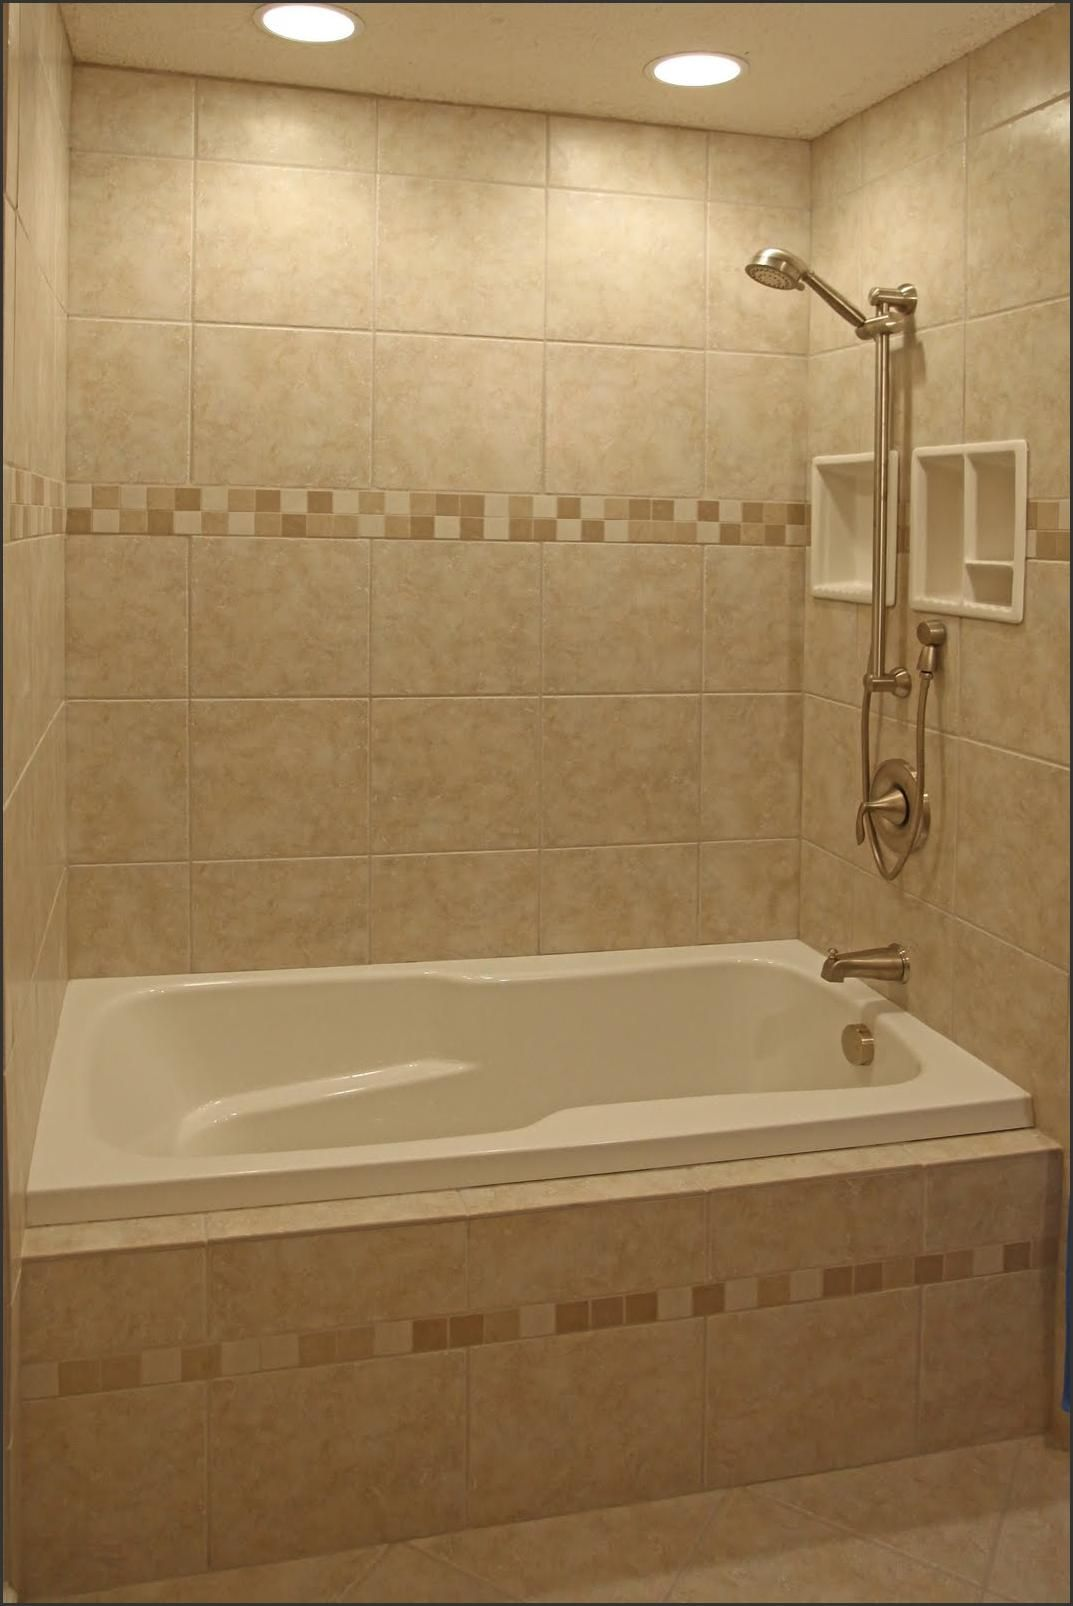 Love everything in this tub insert neutral warm tile with accent